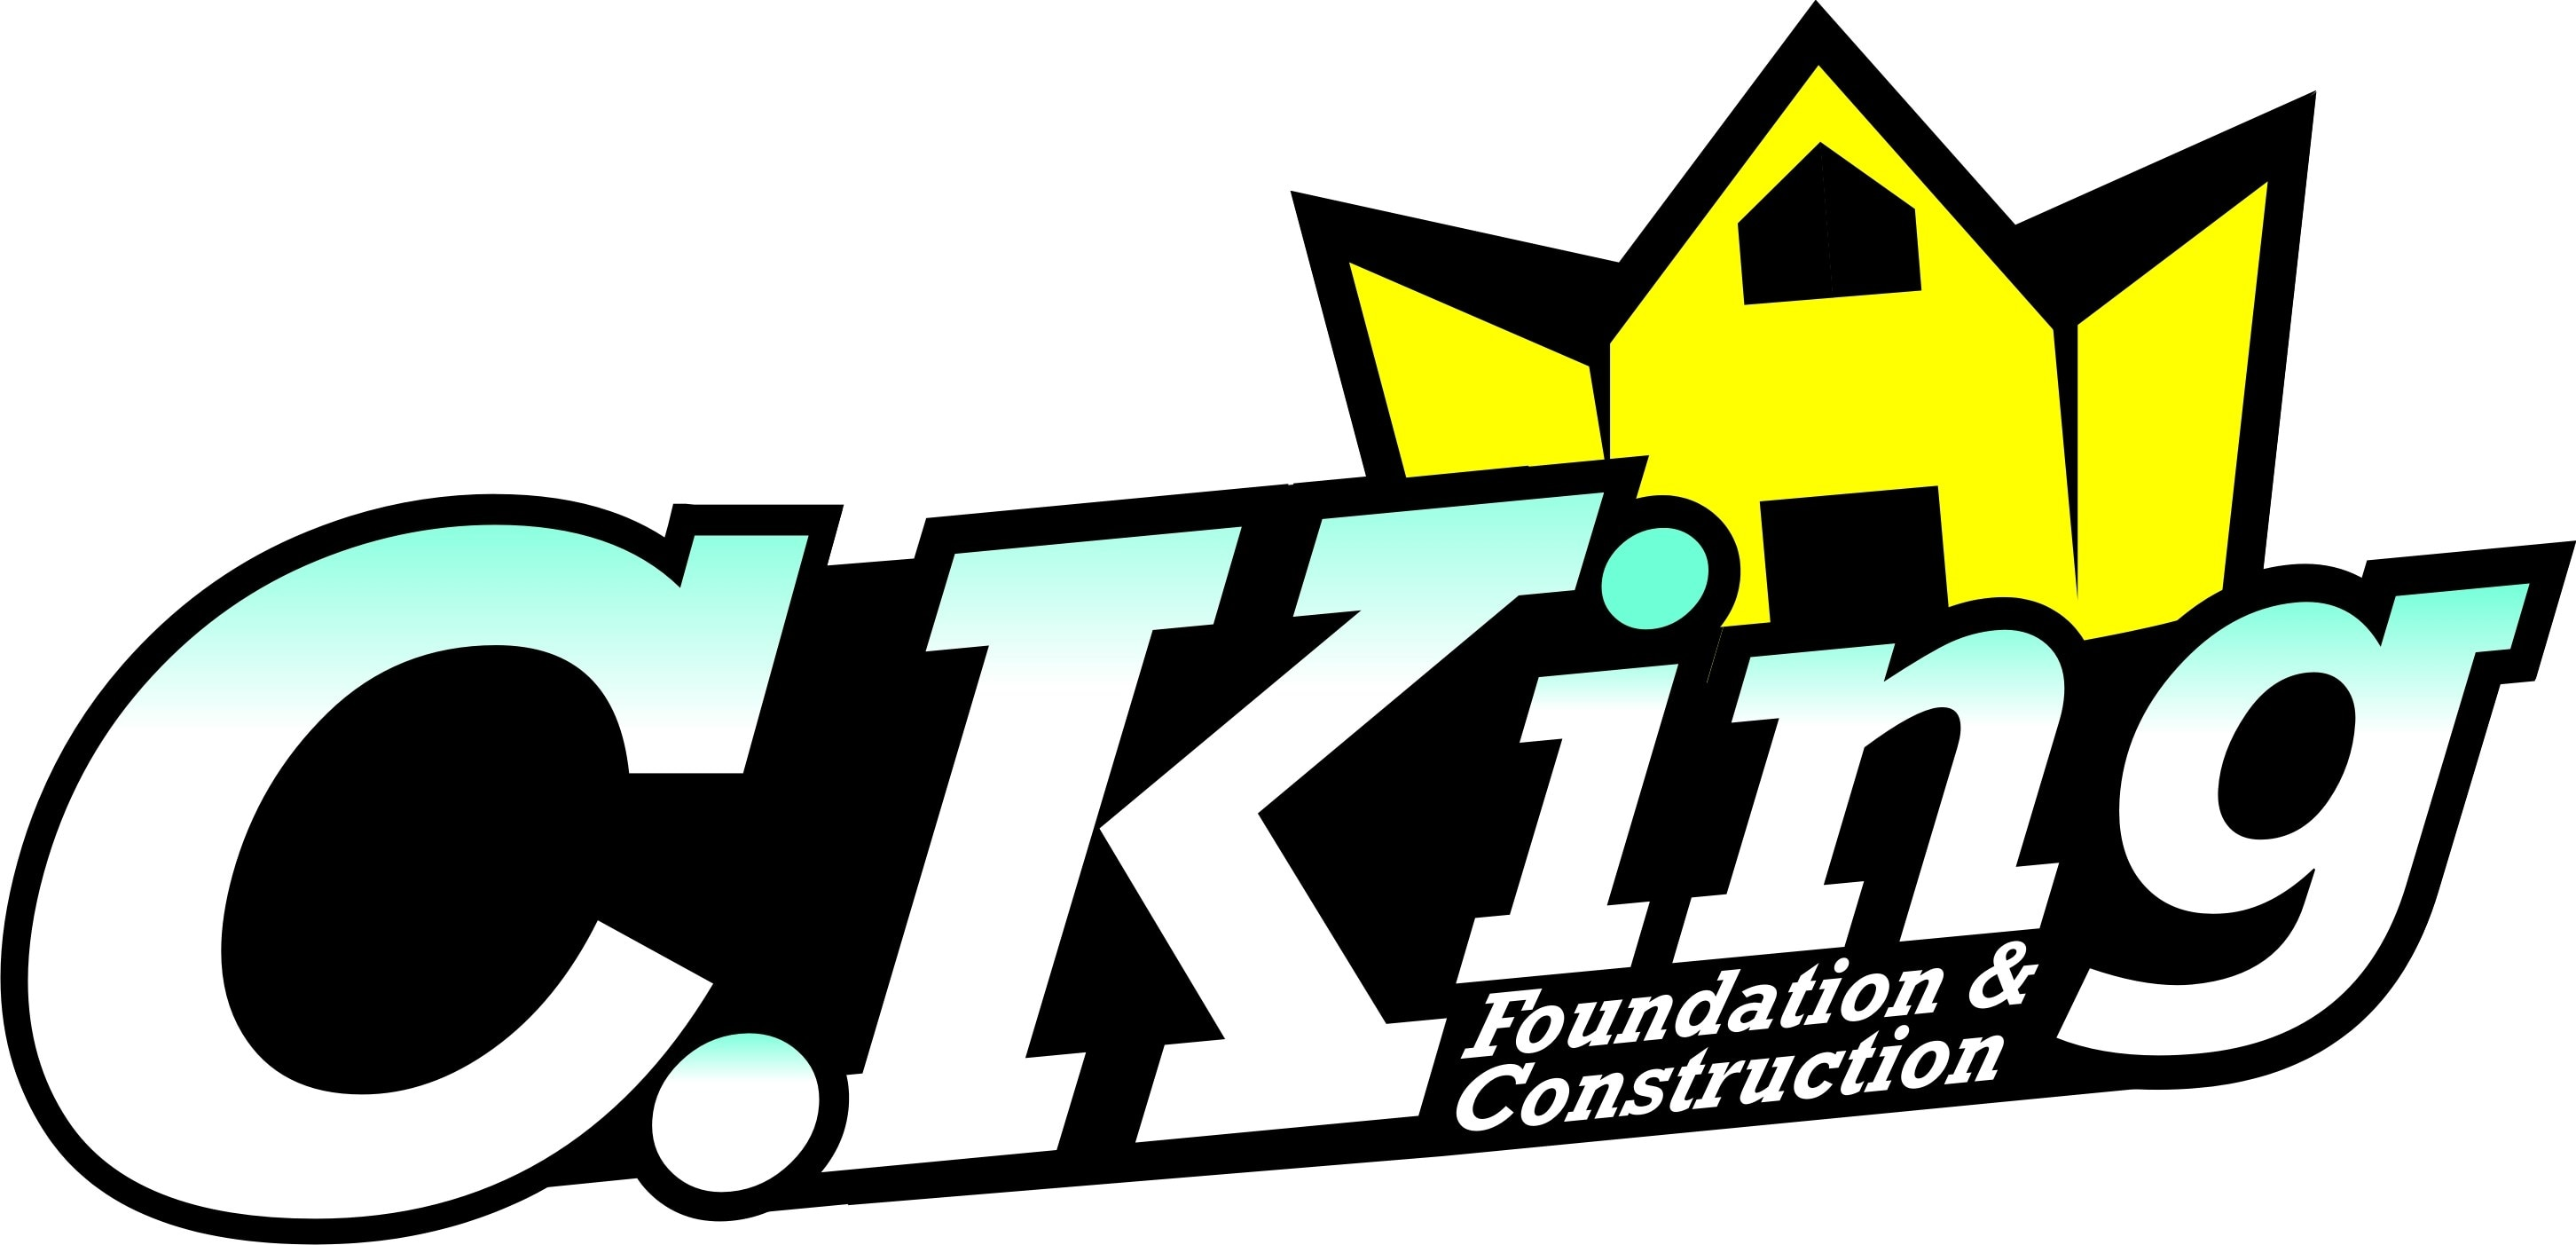 C King Construction Llc logo